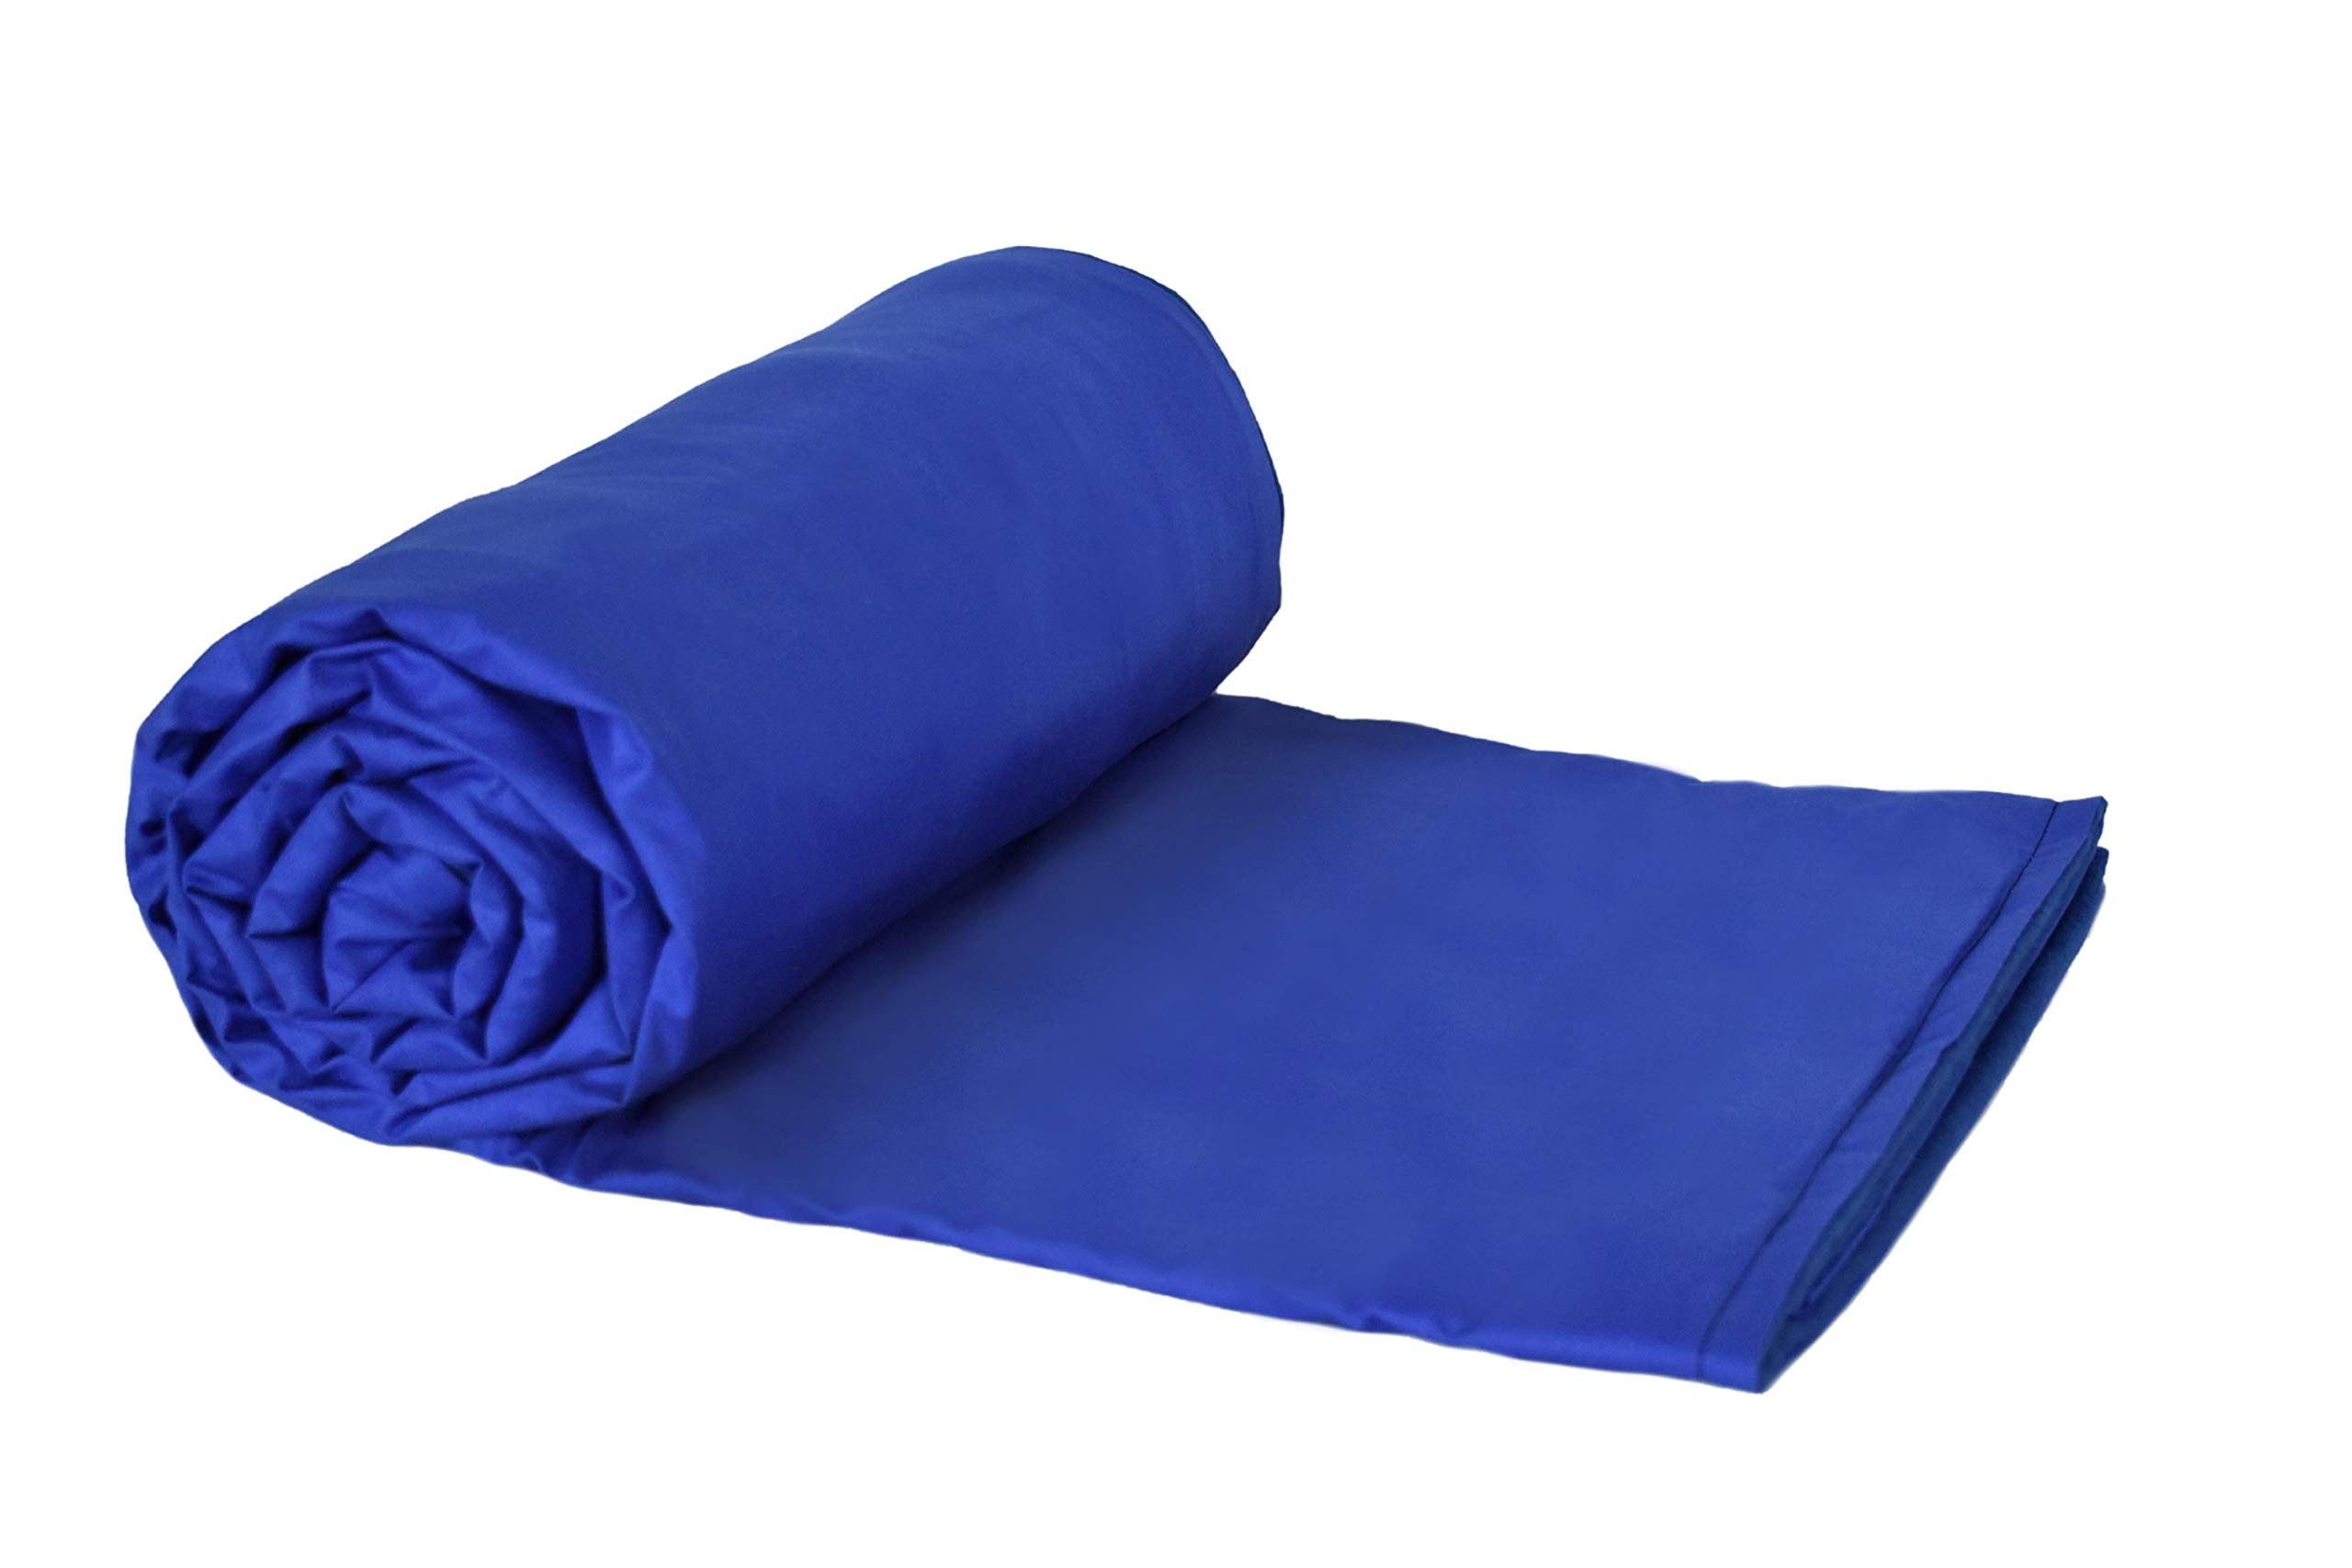 Weighted Blankets Plus LLC - Made in USA - Child Small Weighted Blanket - Blue - Cotton/Flannel (48'' L x 30'' W) 4lb Pressure.